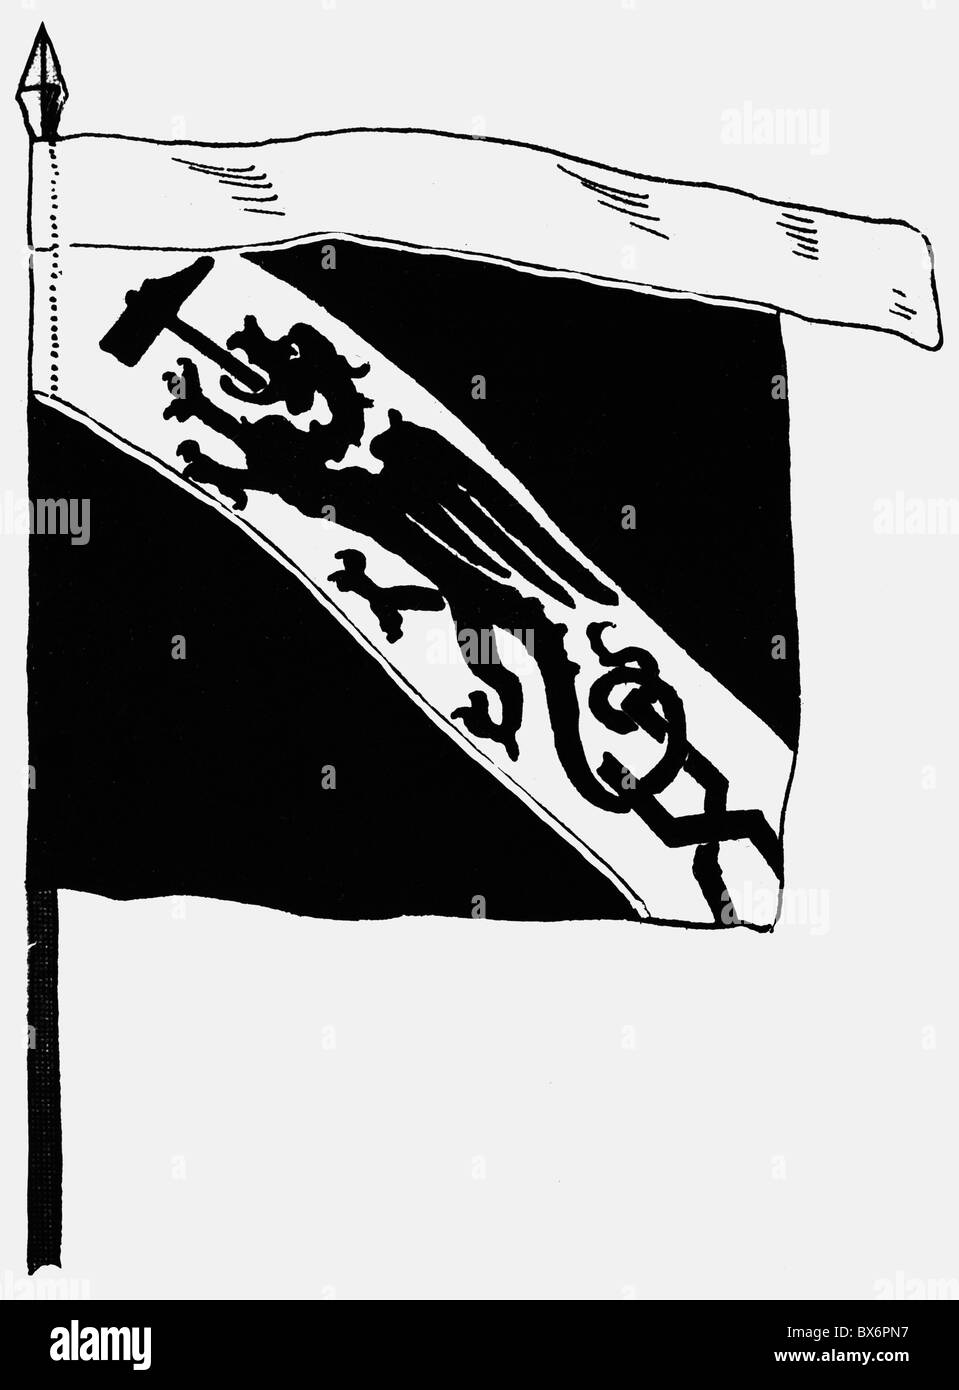 handcraft, guilds, colour of the Strassbourg guild of smiths, 15th century, drawing, 20th century, flag, sign, guild, - Stock Image